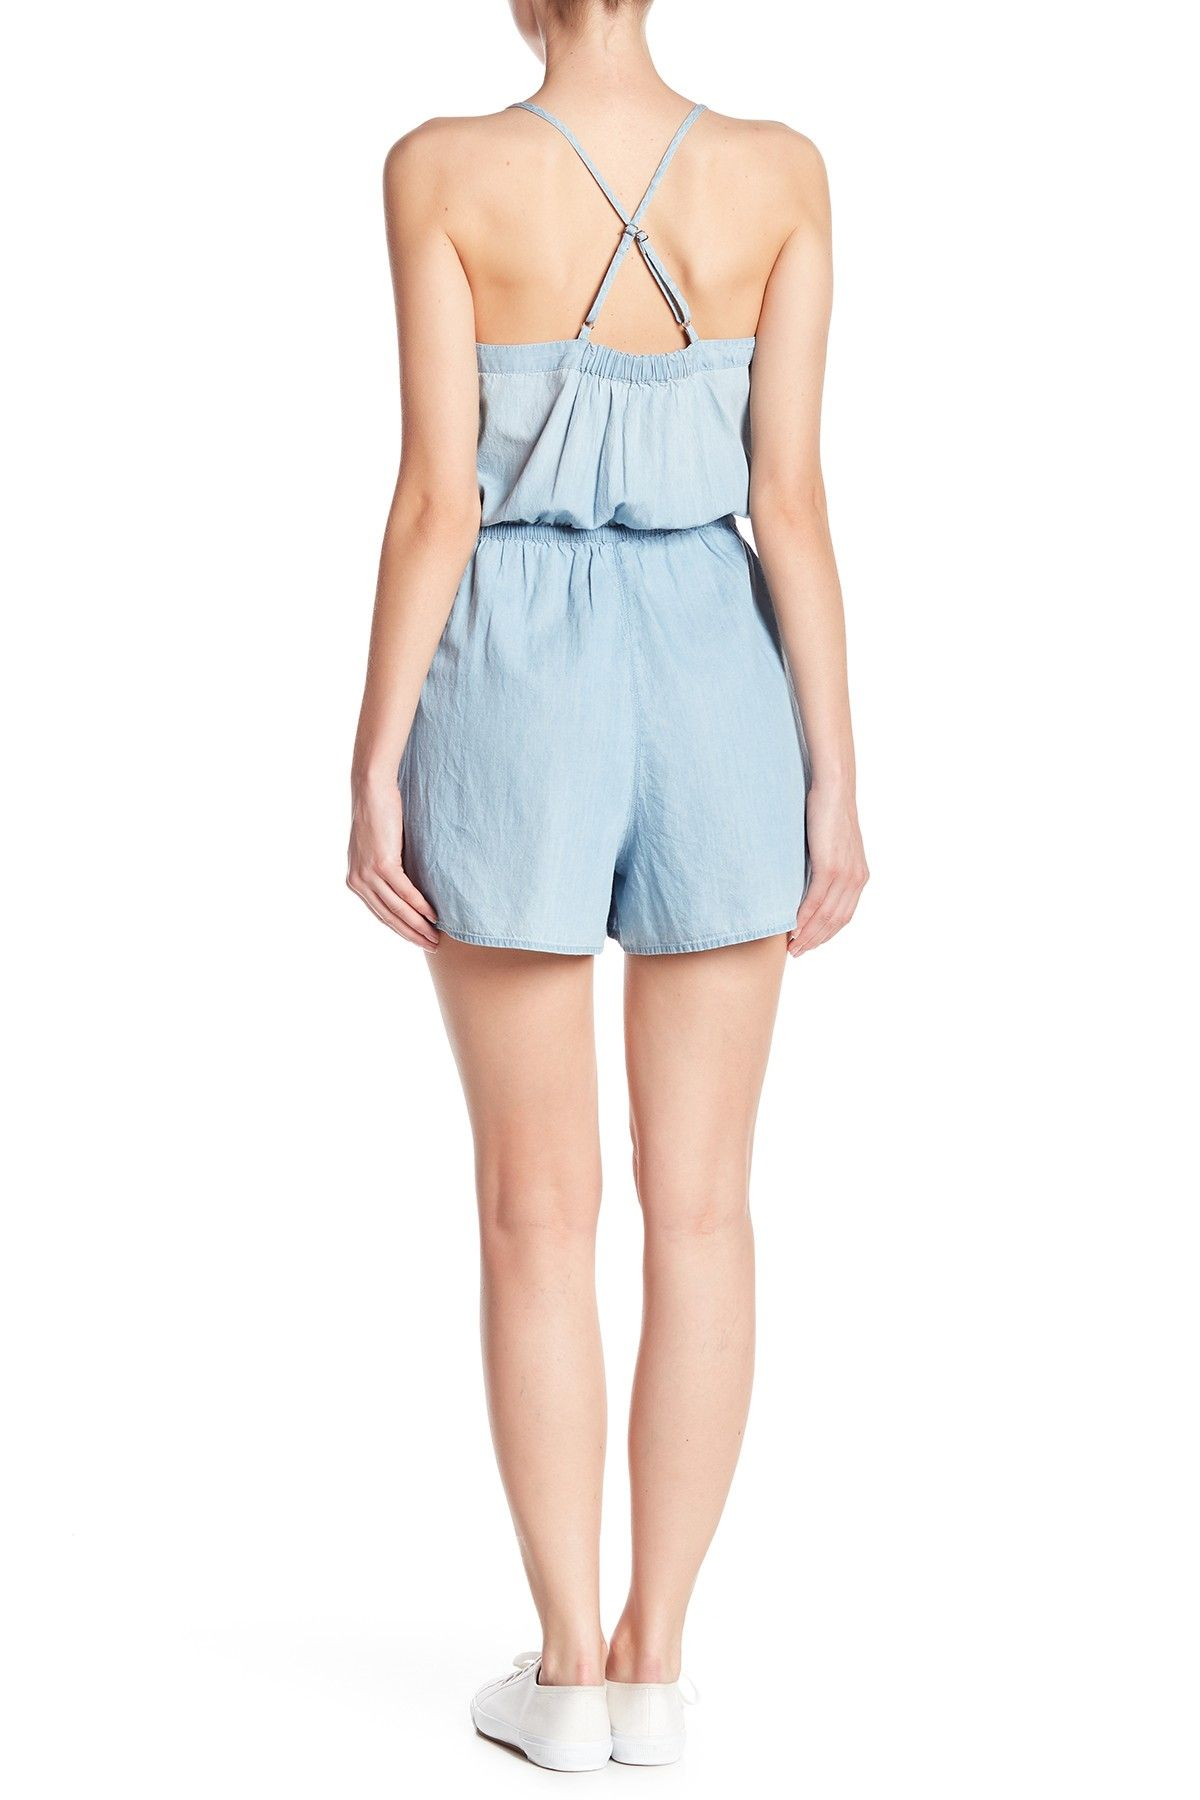 354c7f6ad35020 Chambray Embroidered Romper (Regular   Petite) in 2019